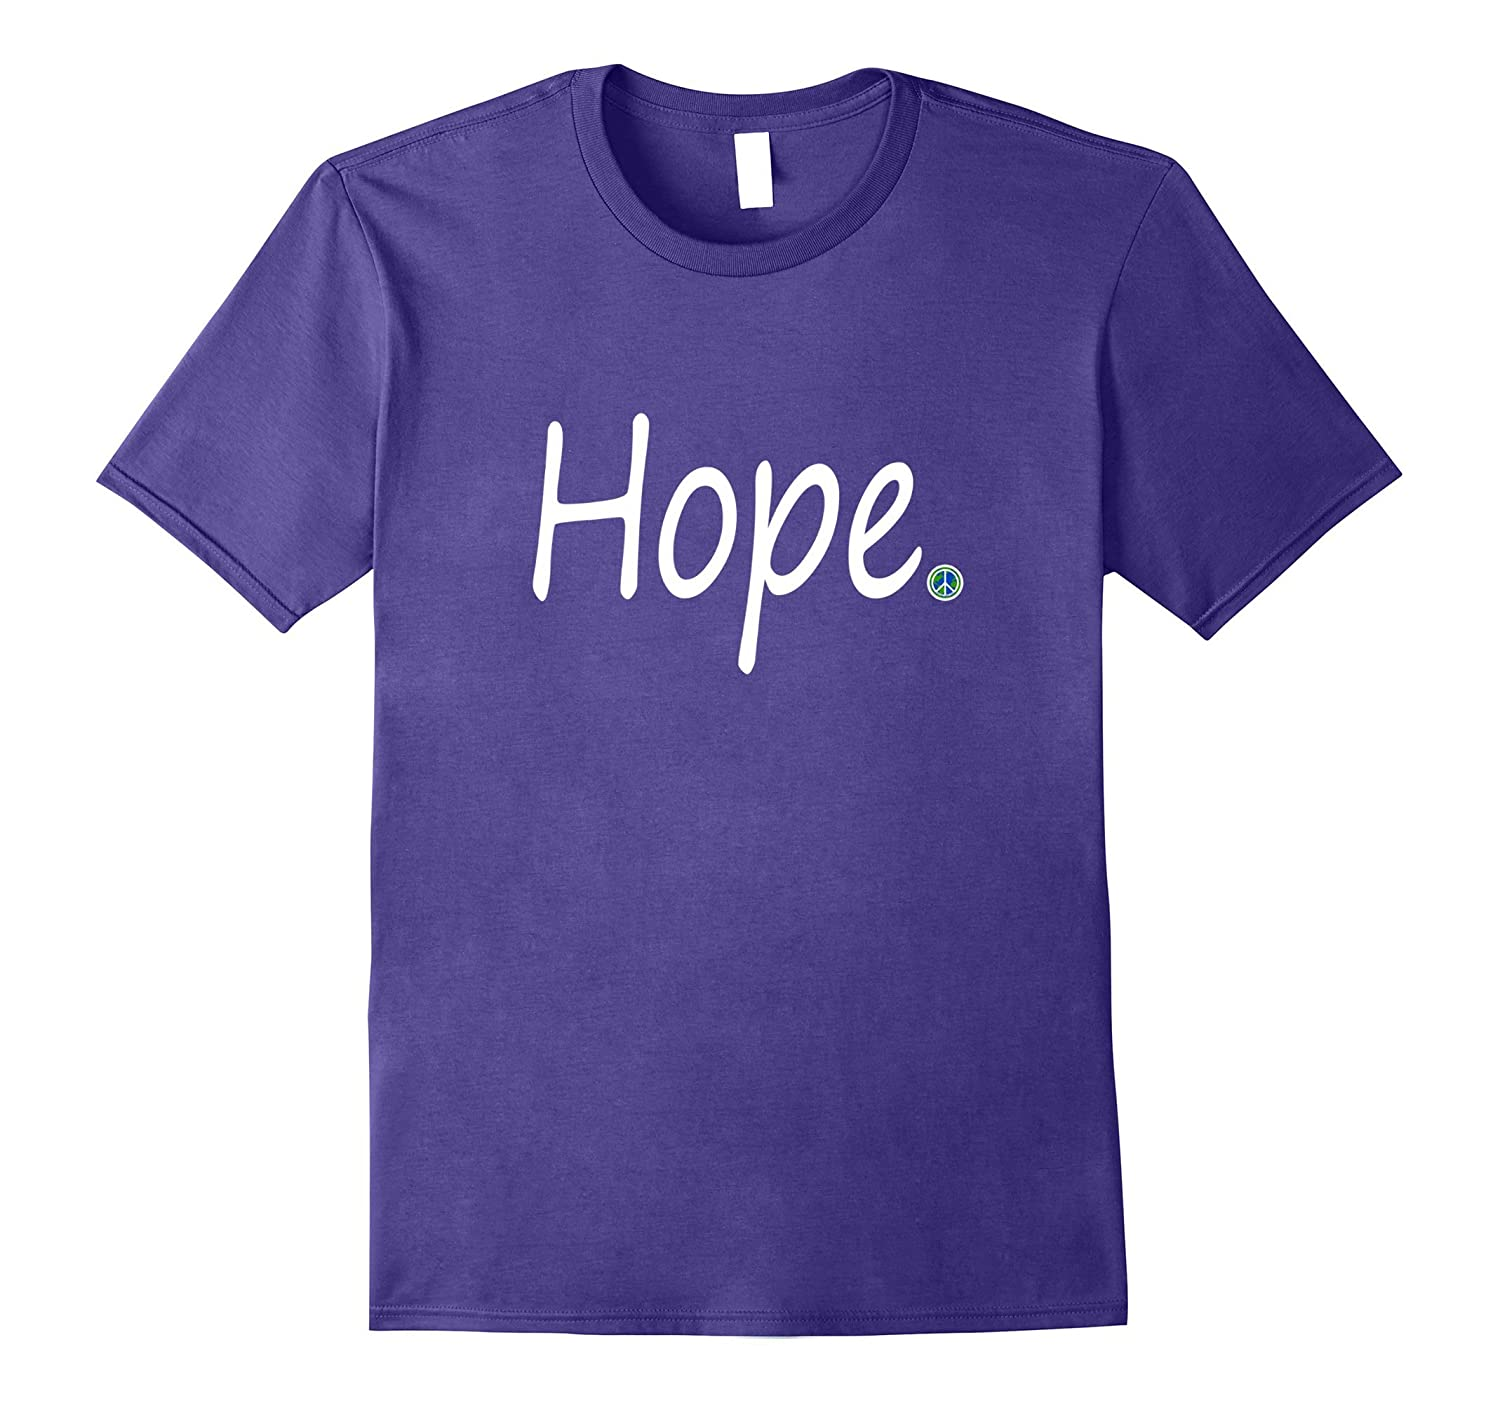 Inspirational Journey Tshirts Hope 2 World Peace Point-Vaci